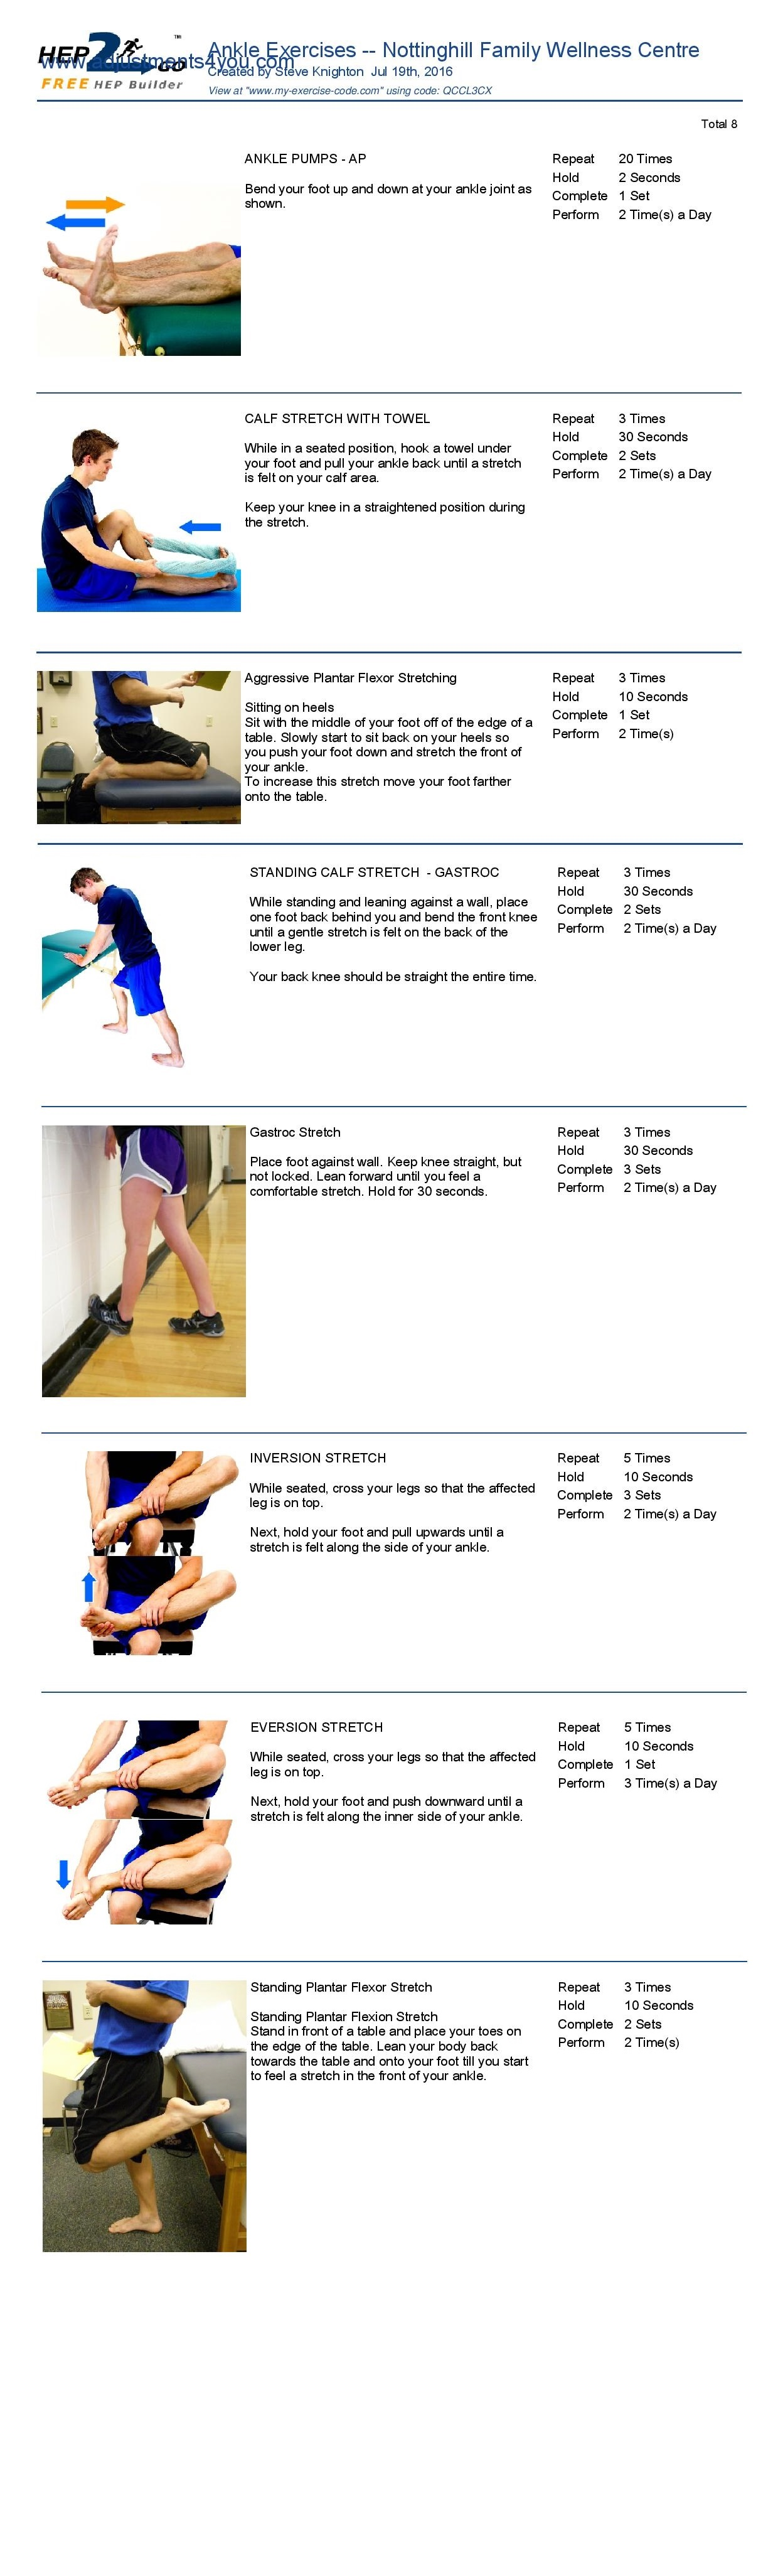 sinus tarsi stretches for ankle pain